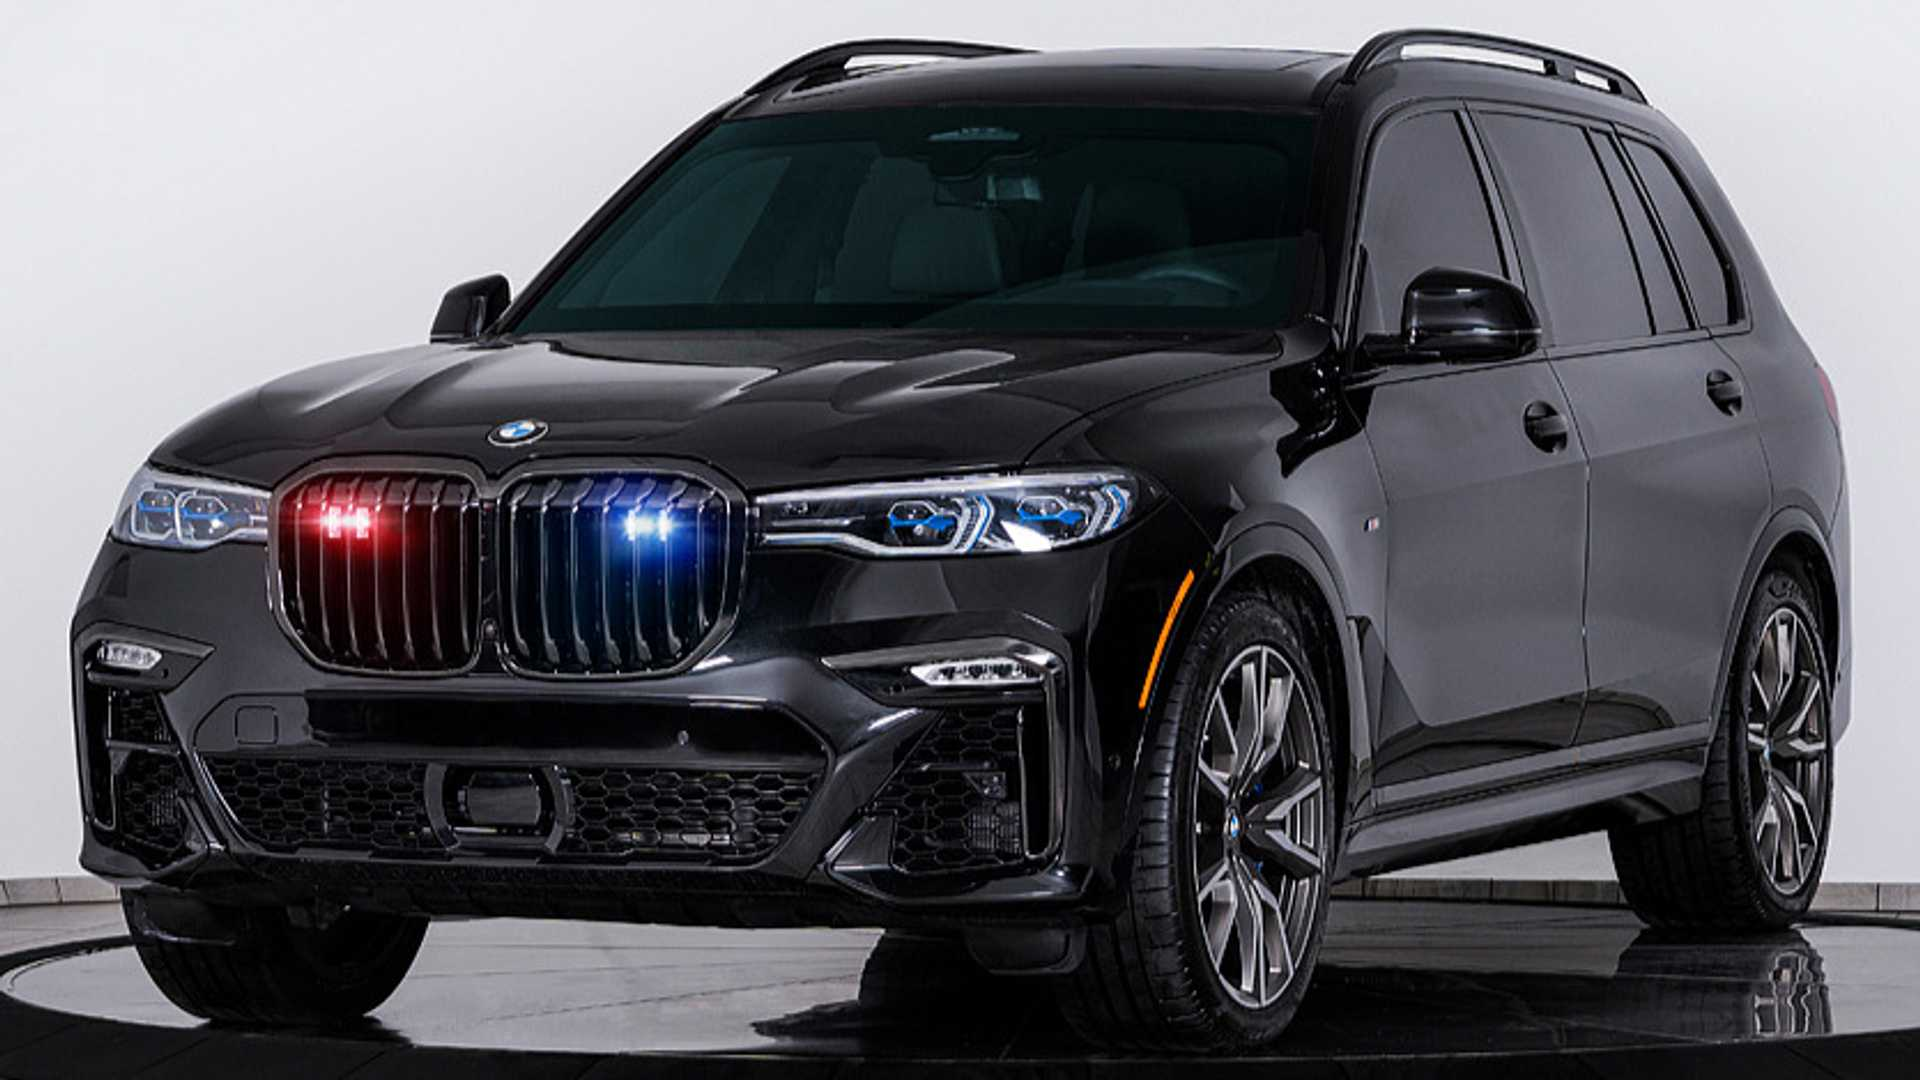 inkas-armored-bmw-x7